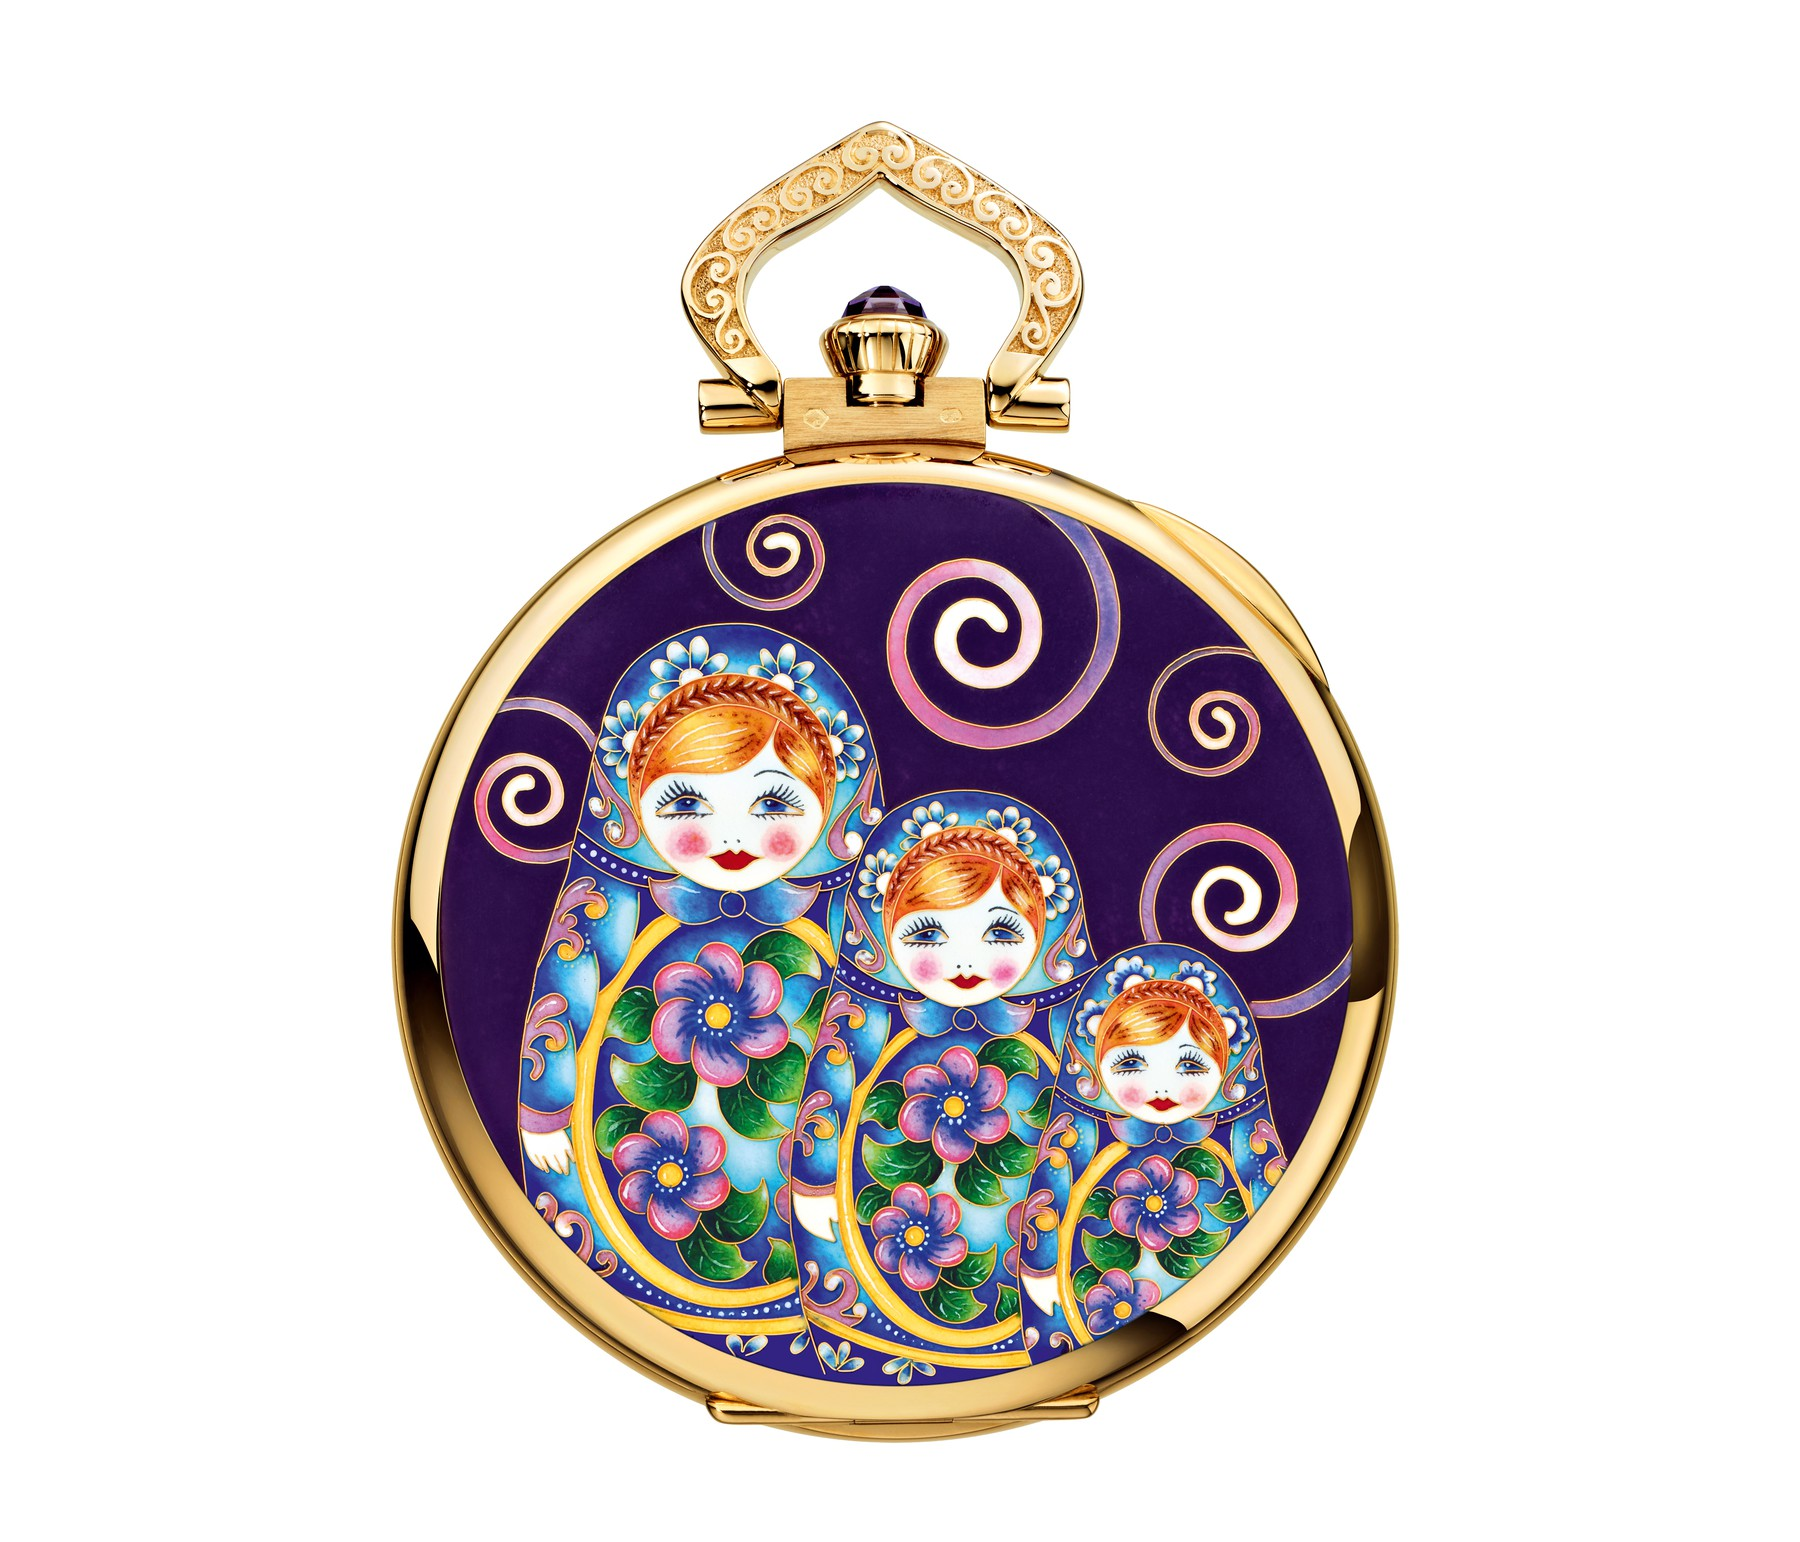 Baselworld 2019 Beautiful Enameling Art in Haute Horlogerie - miniature painting on enamel baselworld 2019 Baselworld 2019: Beautiful Enameling Art in Haute Horlogerie Baselworld 2019 Beautiful Enameling Art in Haute Horlogerie miniature painting on enamel